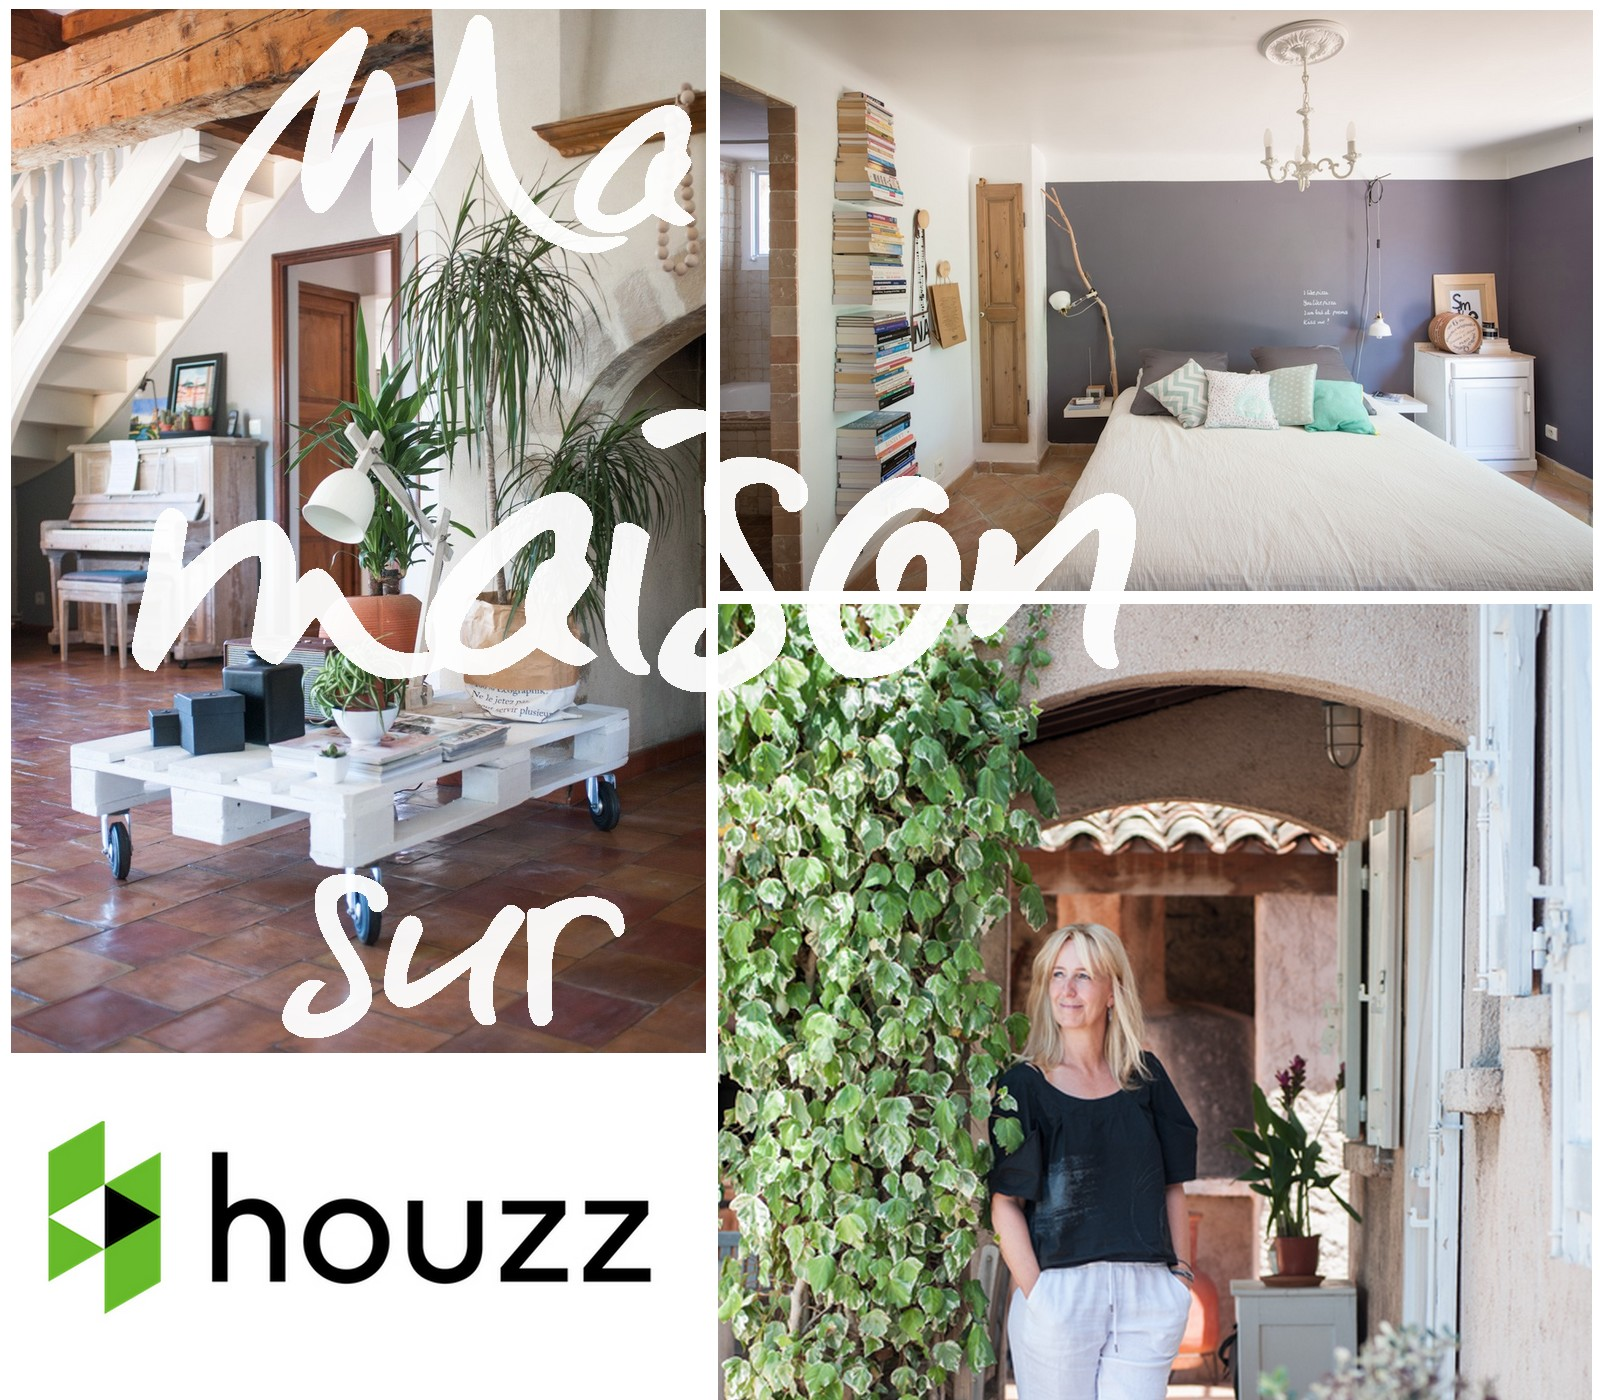 My home on Houzz